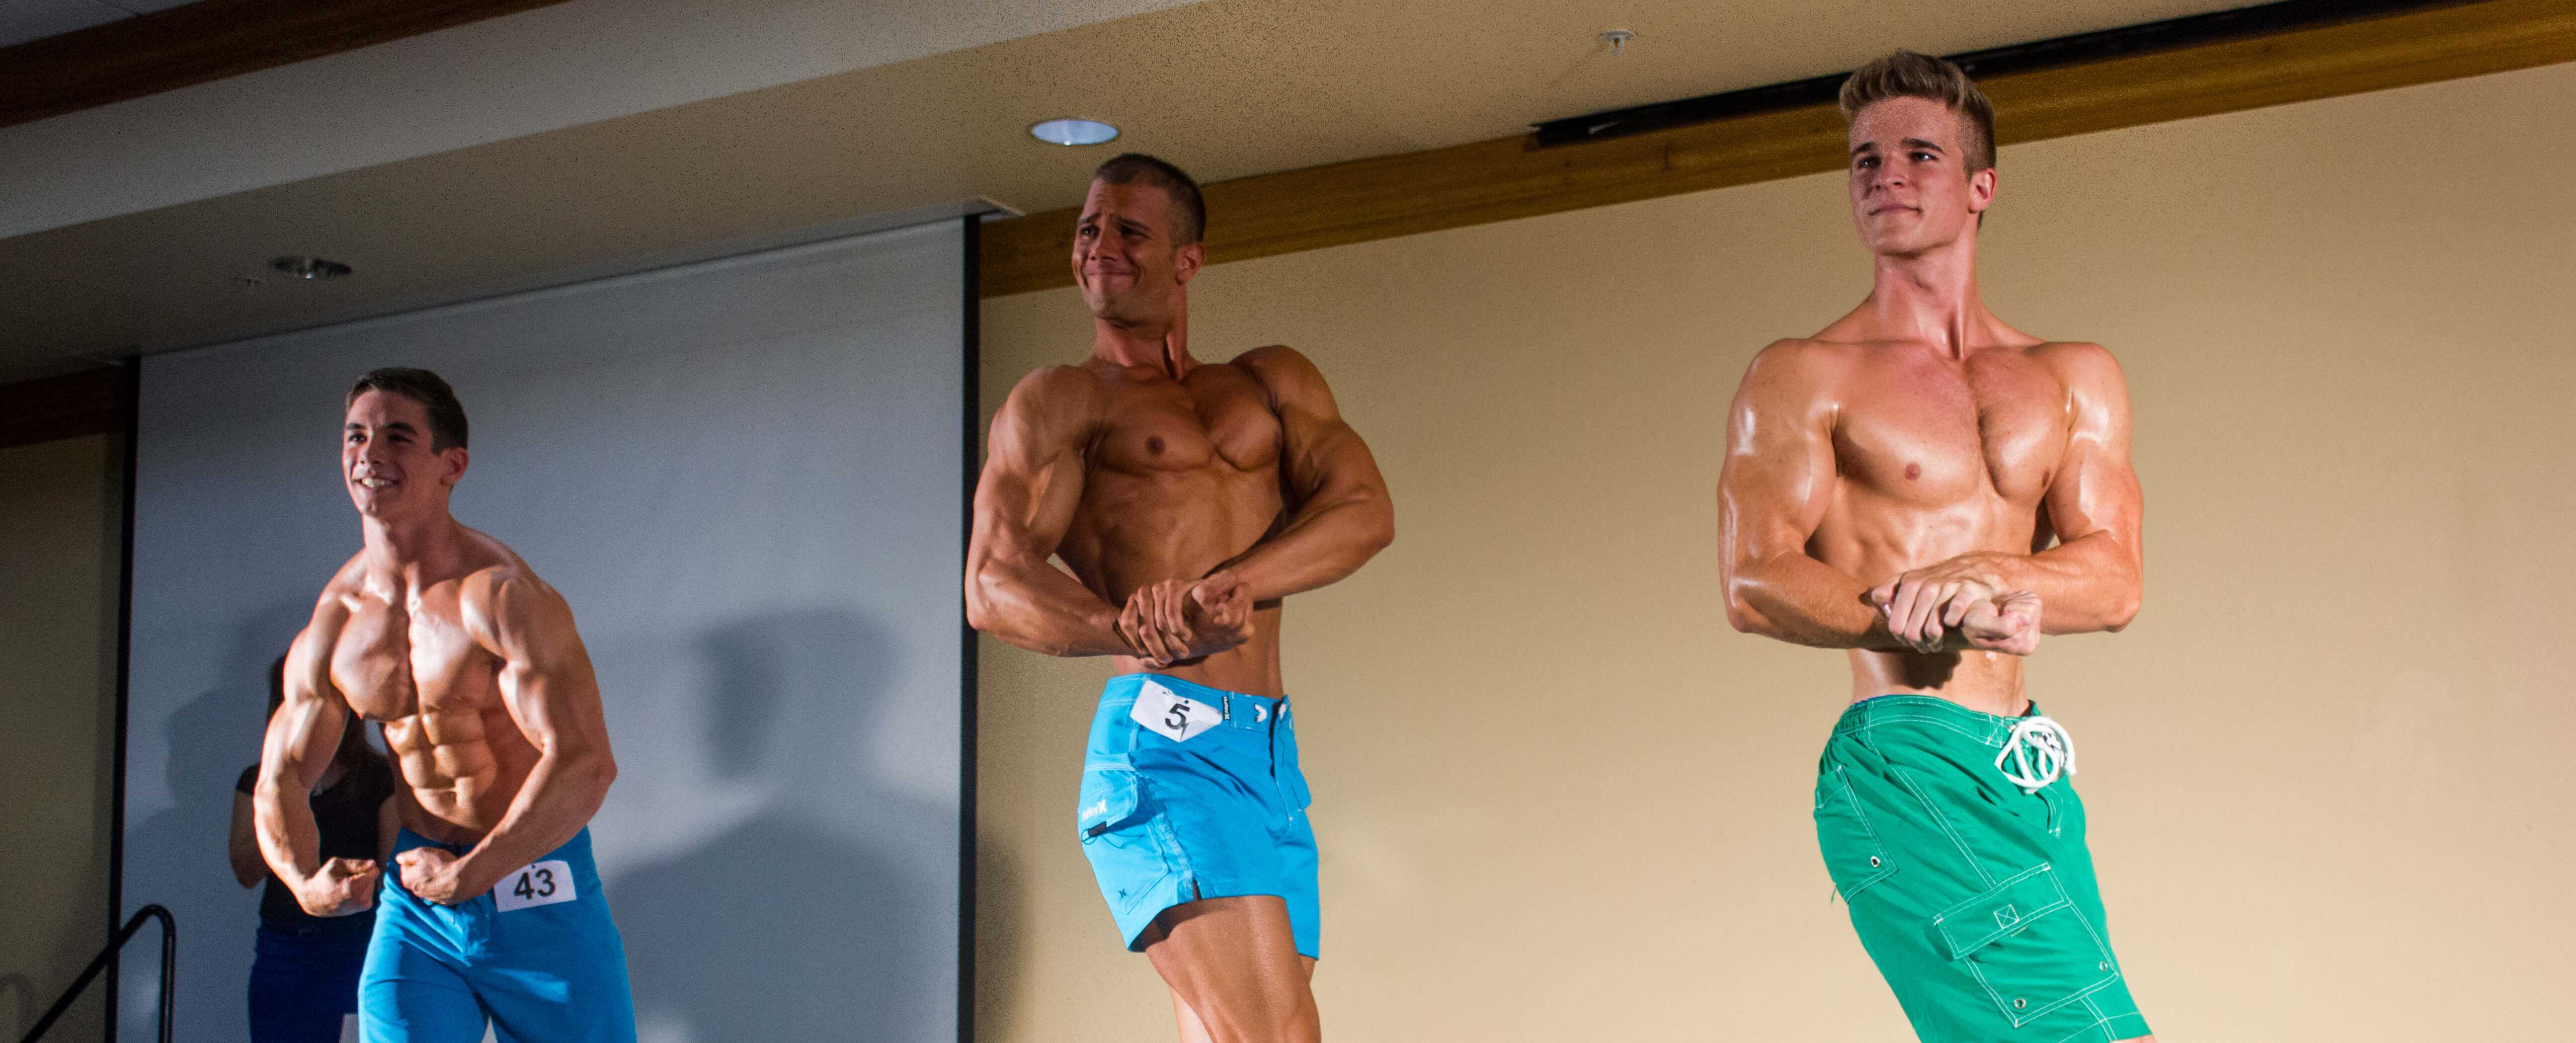 FGCU Spring Physique Show- 'Mr. Perfect's' journey to success